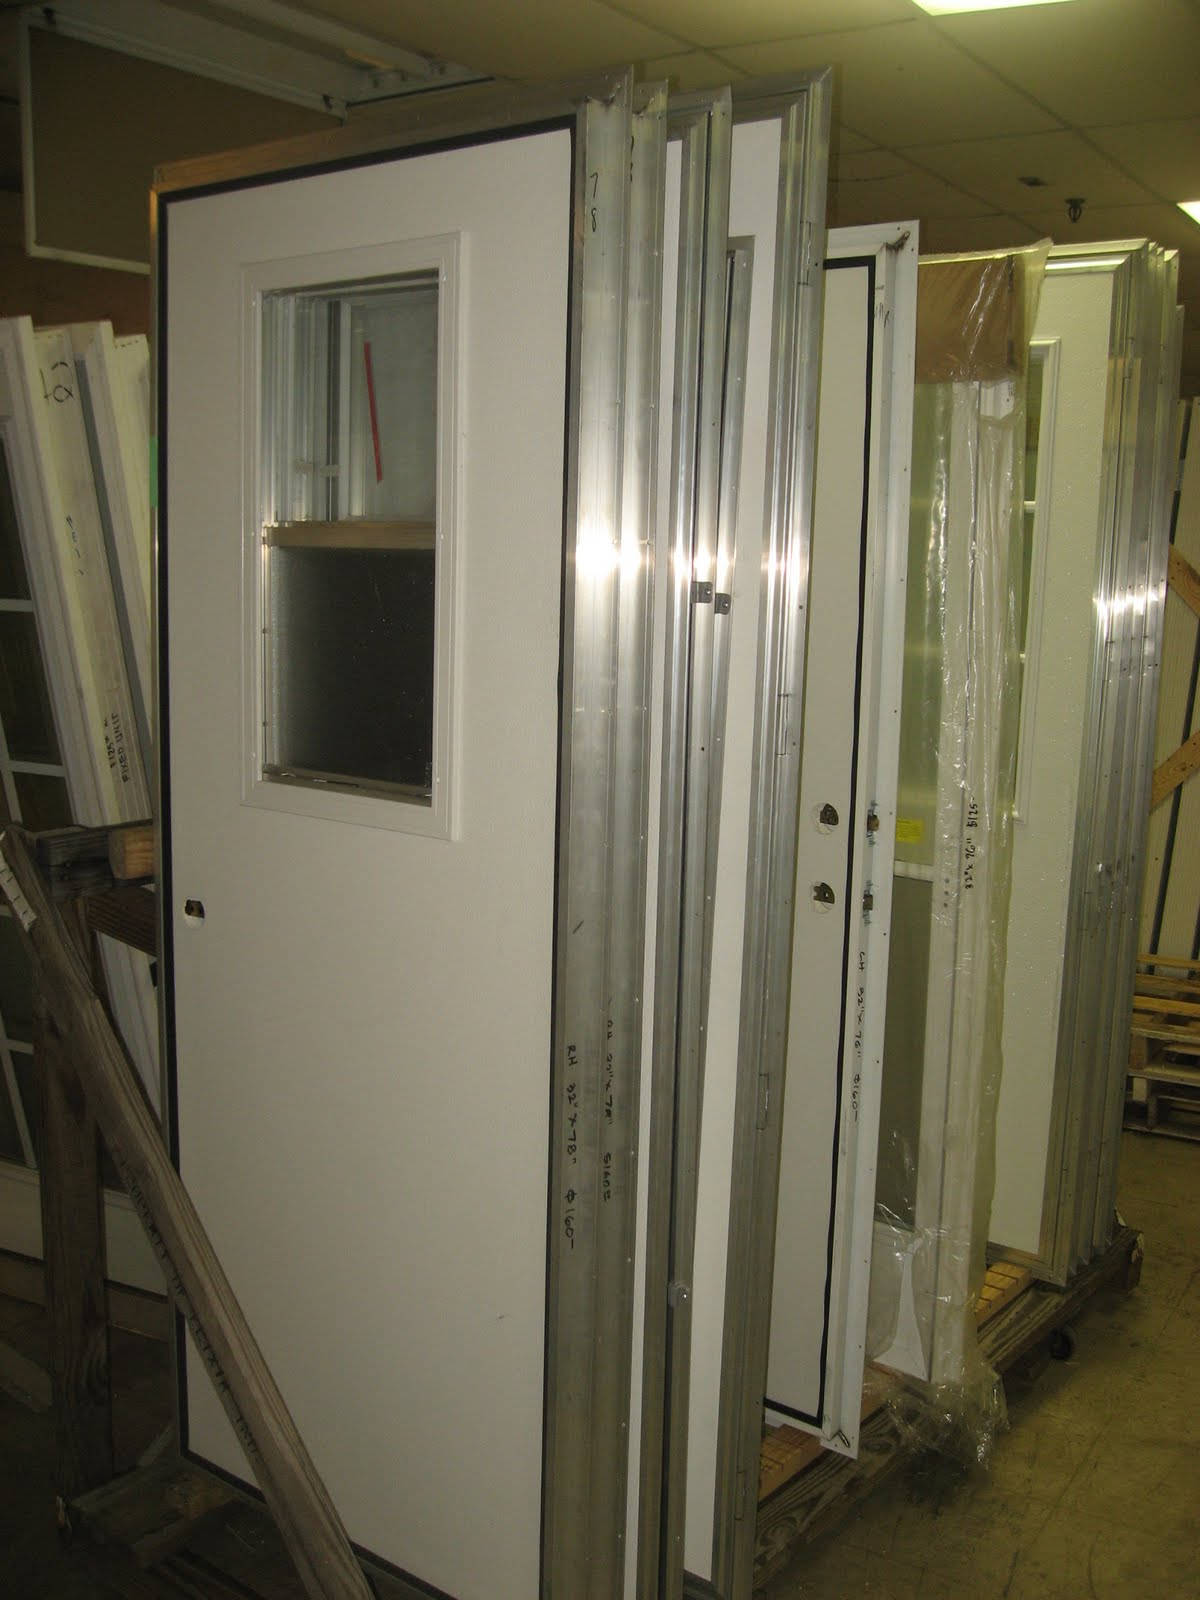 IMG_3591 Window Treatments For Mobile Home Trailer Windows on old mobile home windows, mobile home replacement windows, construction of mobile homes in windows,